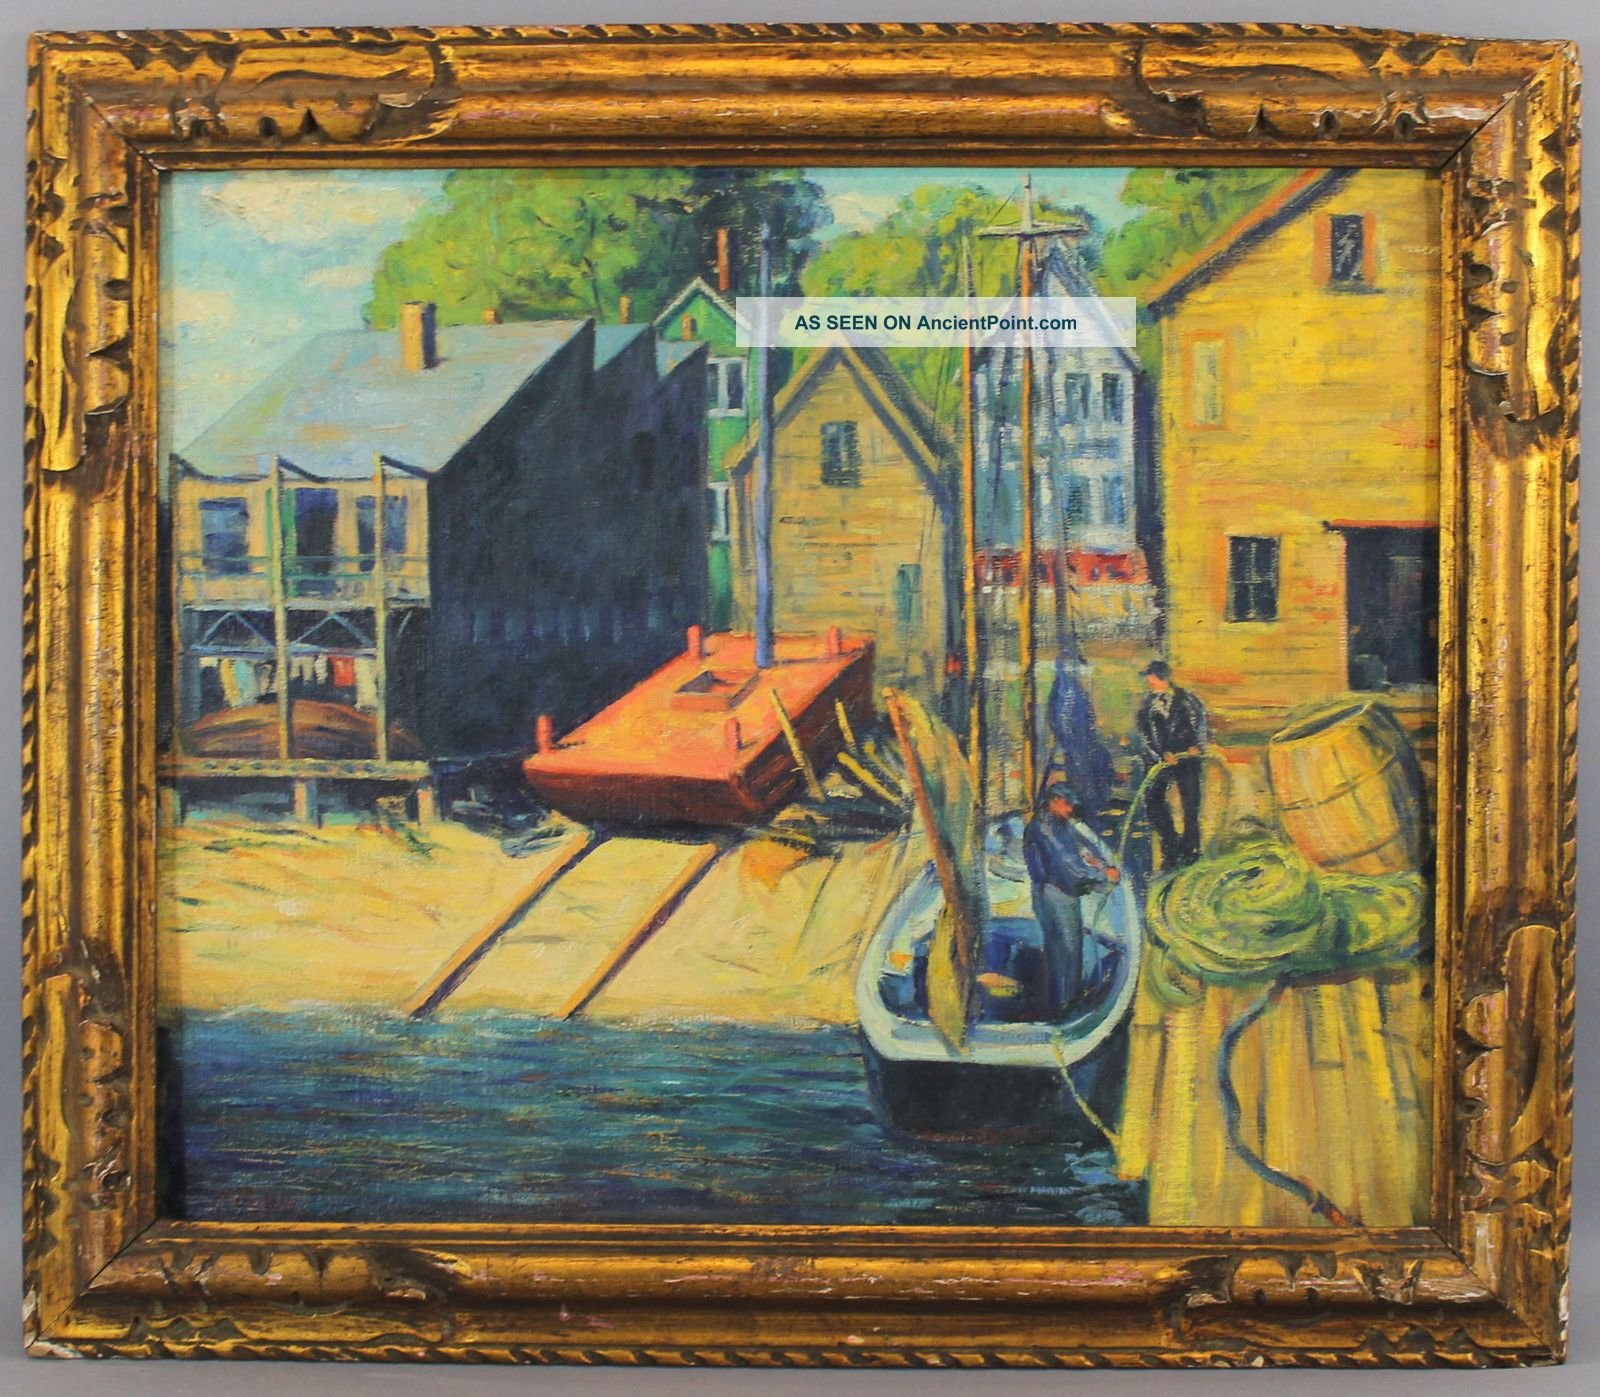 Antique Harry Shokler Gloucester Harbor Fishing Boat Oil Painting & Carved Frame Other Maritime Antiques photo